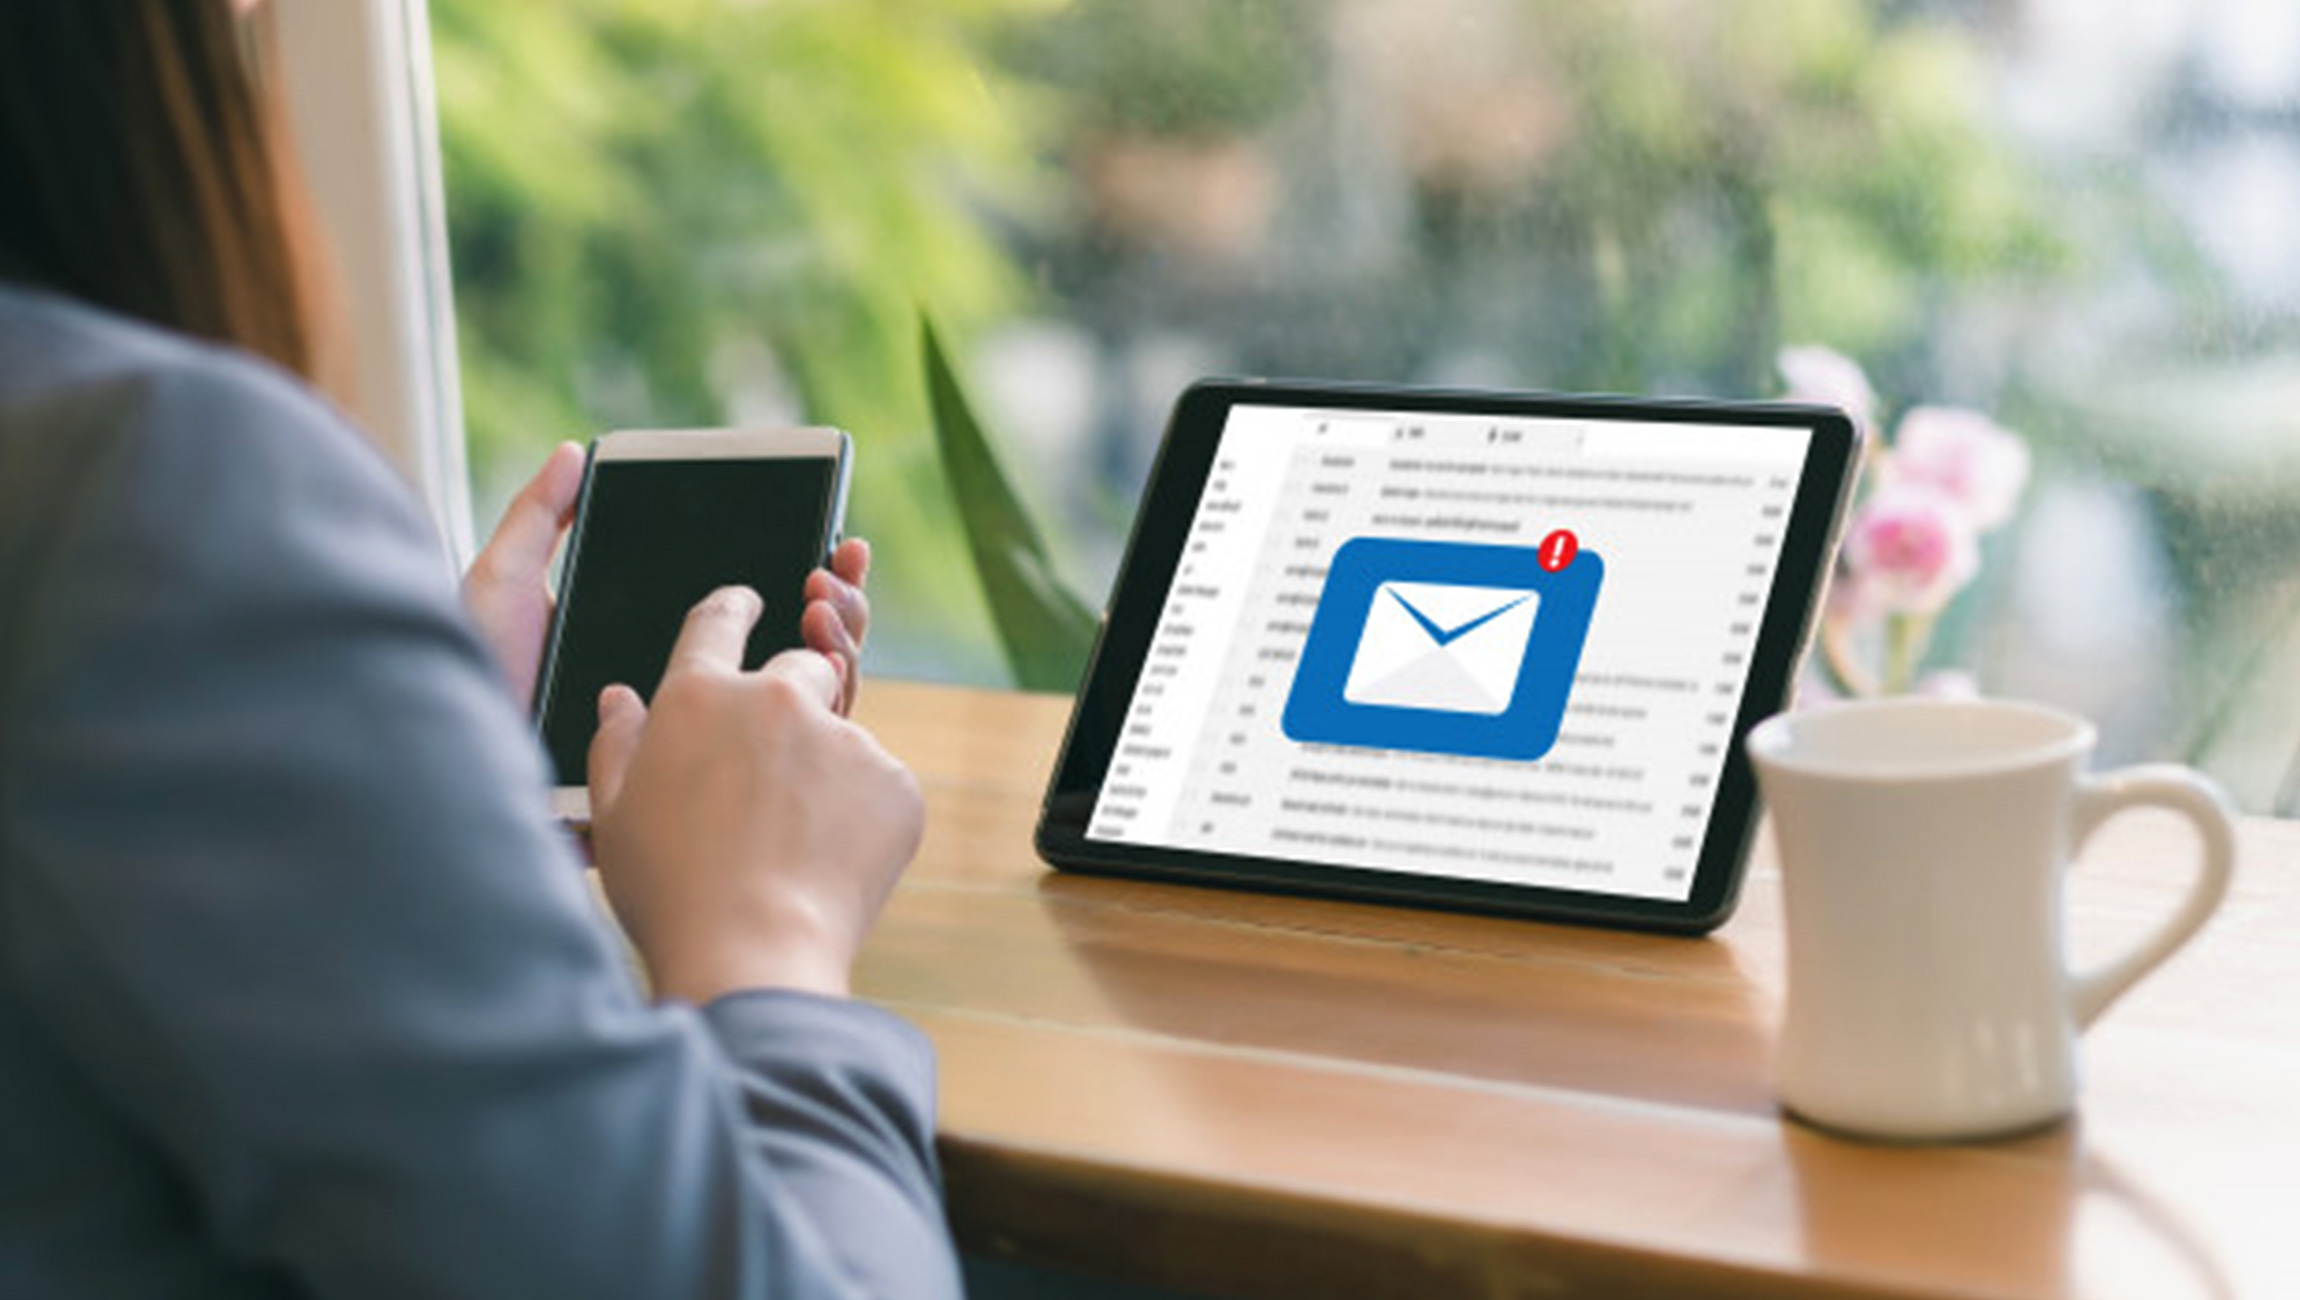 Seven Tips to Make Your Email Marketing Campaign More Irresistible